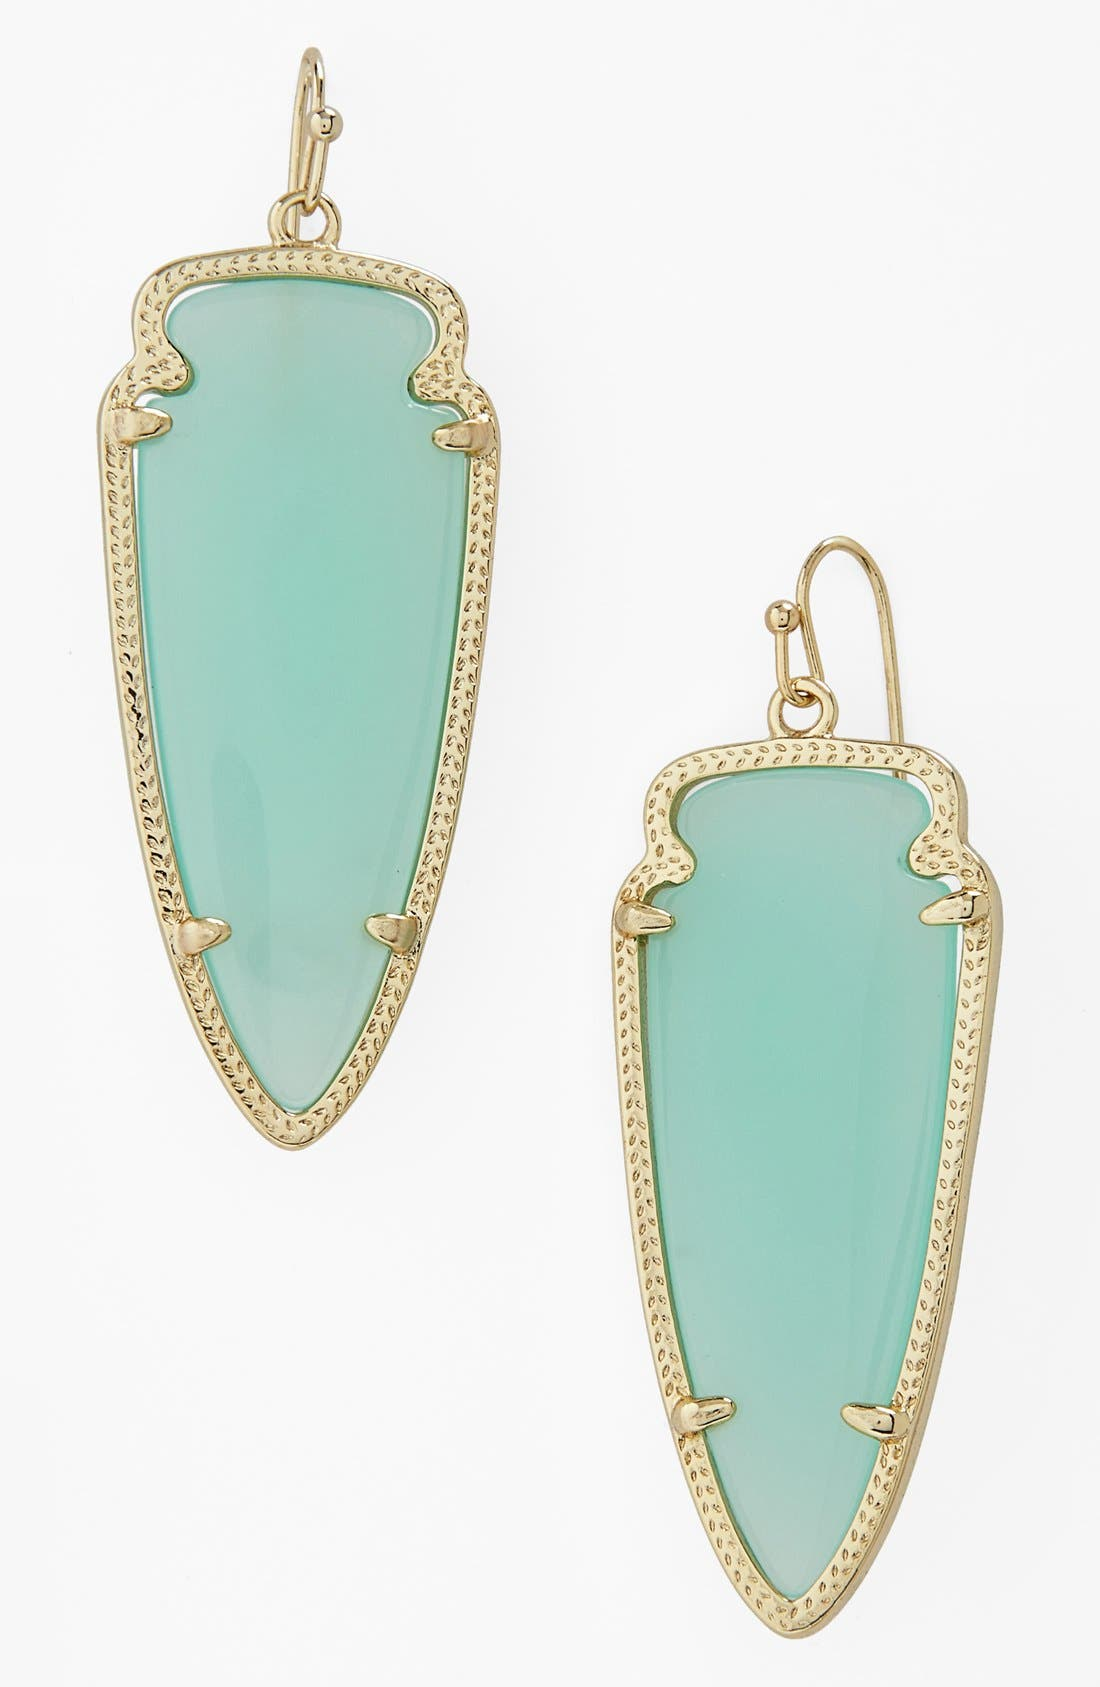 Main Image - Kendra Scott 'Skylar Spear' Statement Earrings